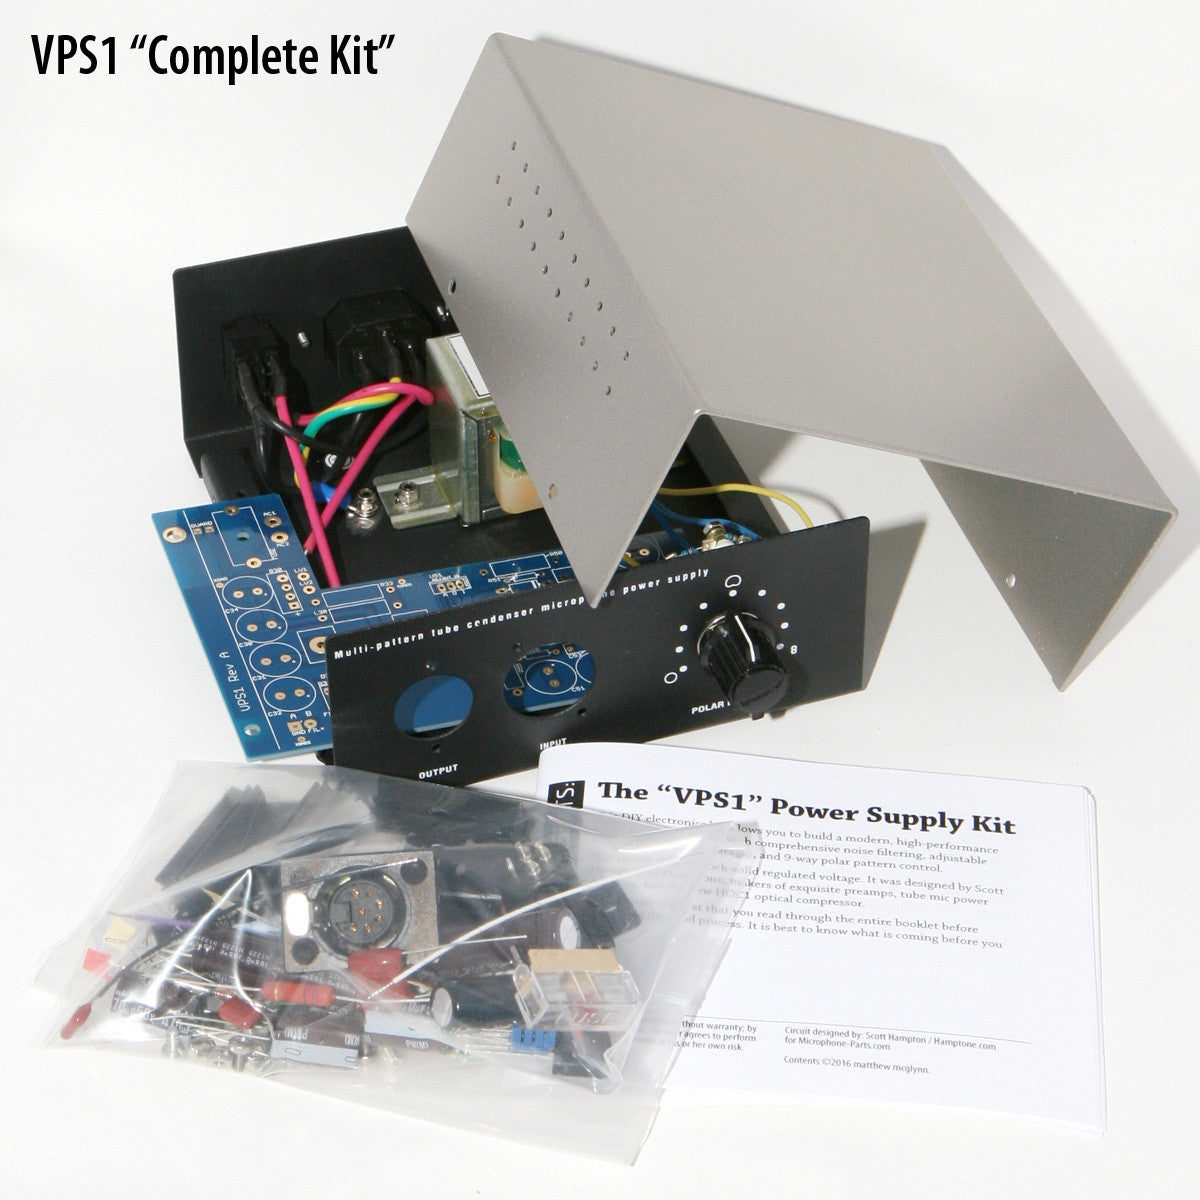 Vps1 Tube Mic Power Supply Kit Variable Voltage Regulator Circuit Is Designed To